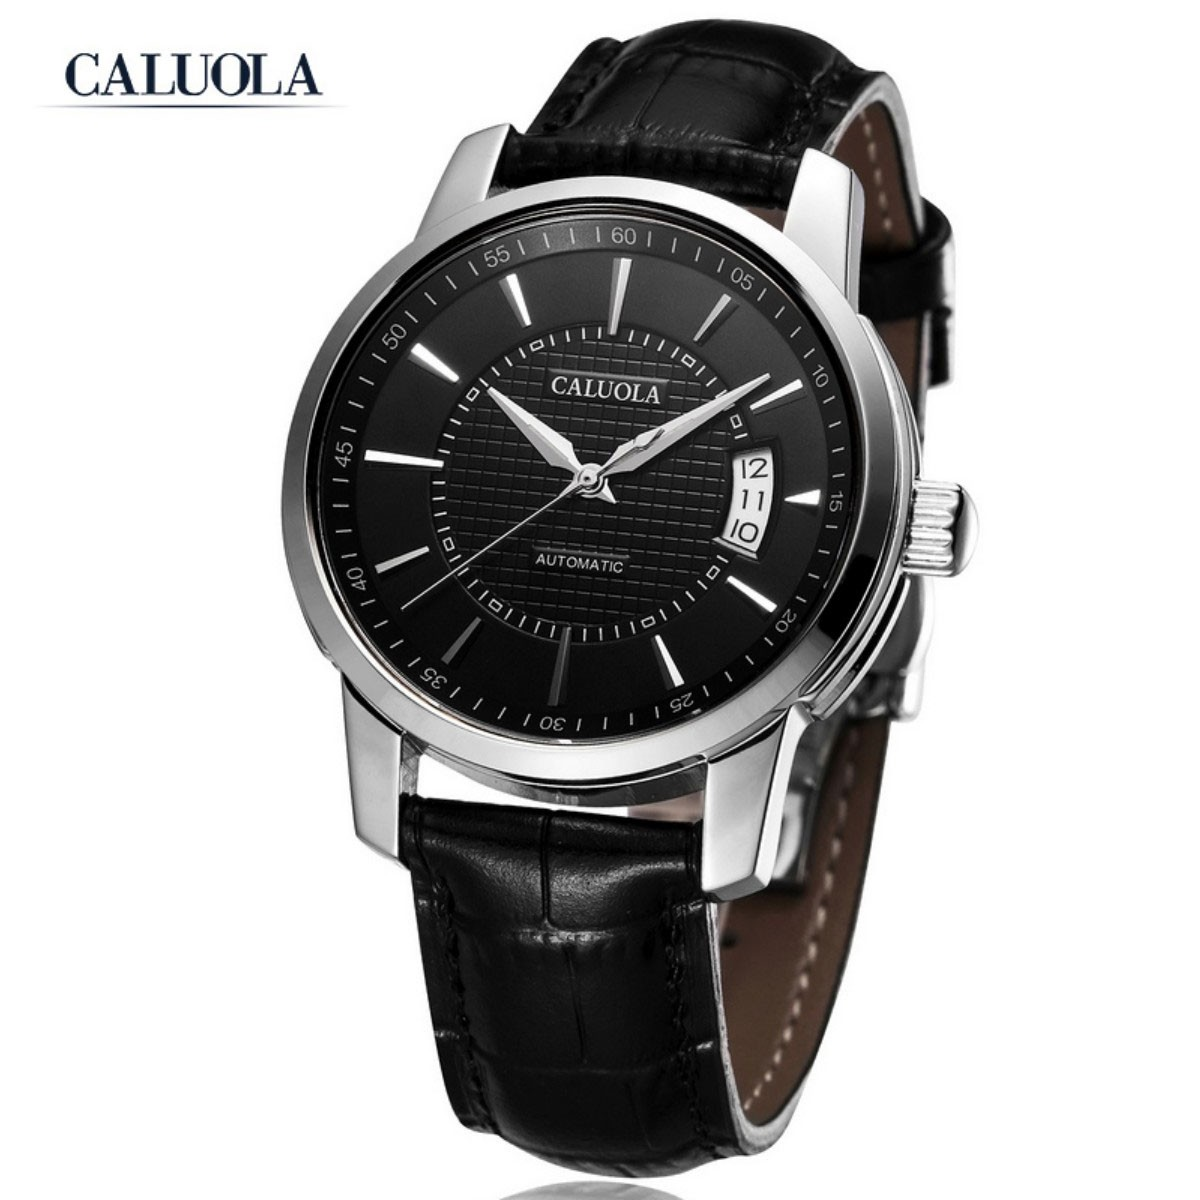 Caluola Men Watch 39mm Steel CA1014L